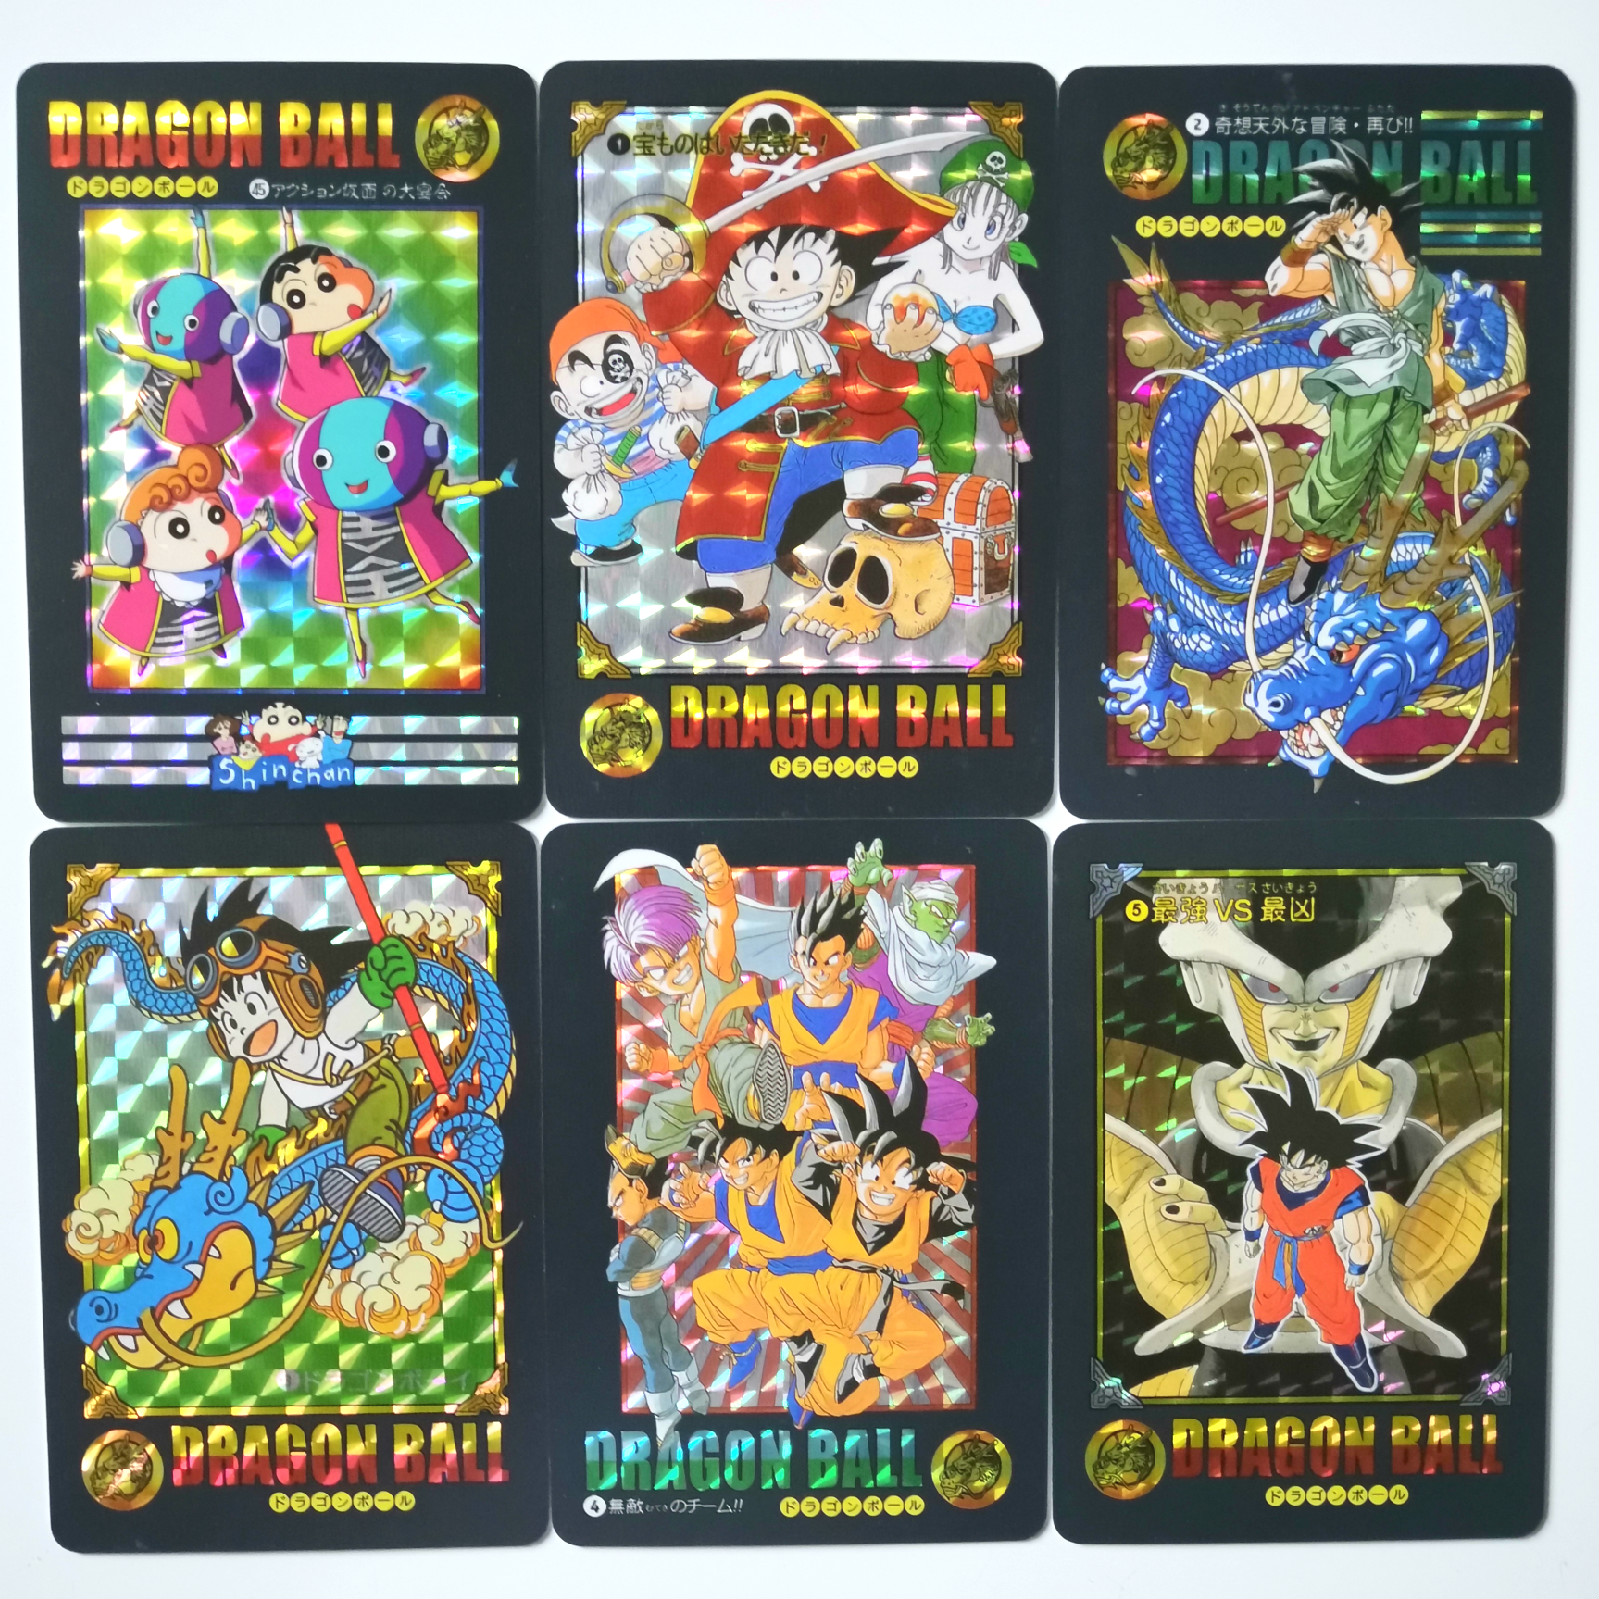 54pcs/set Super Dragon Ball Z Storm Clouds 1 2 Heroes Battle Card Ultra Instinct Goku Vegeta Game Collection Cards